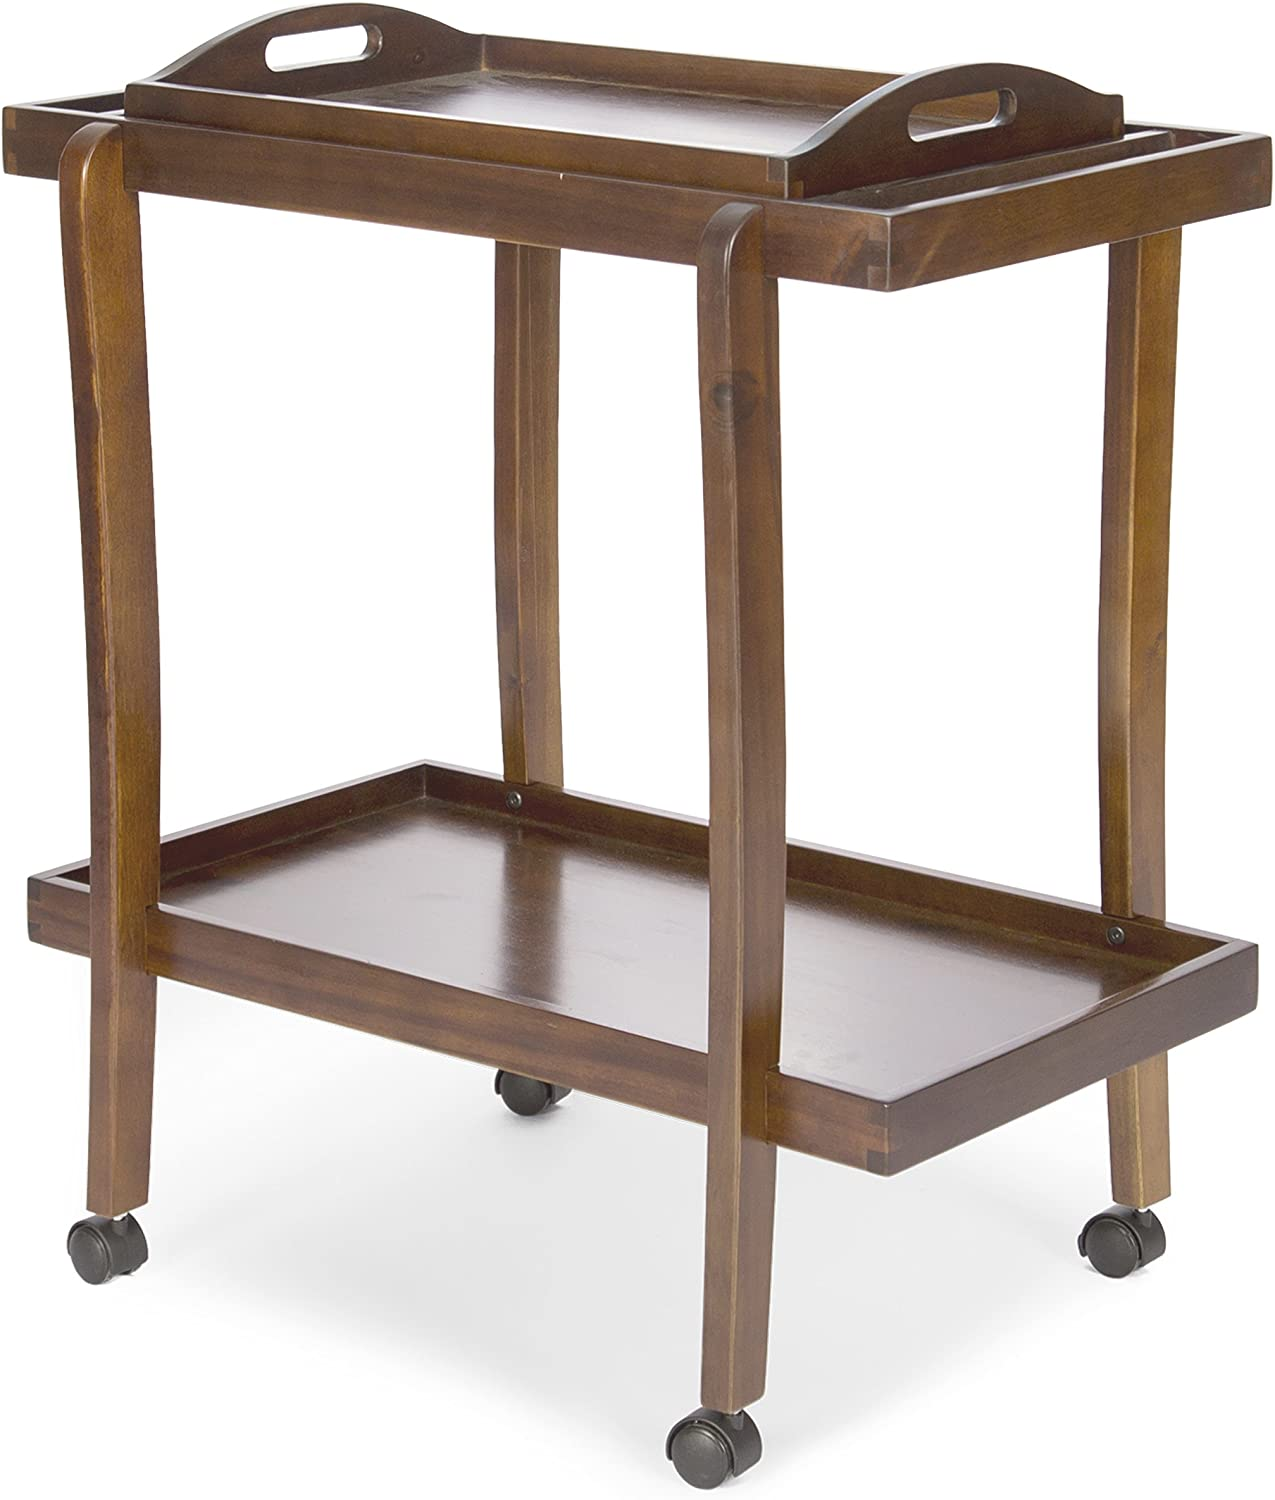 Christopher Knight Home Preslie Acacia Wood Bar Cart with Removable Top Tray, Dark Oak